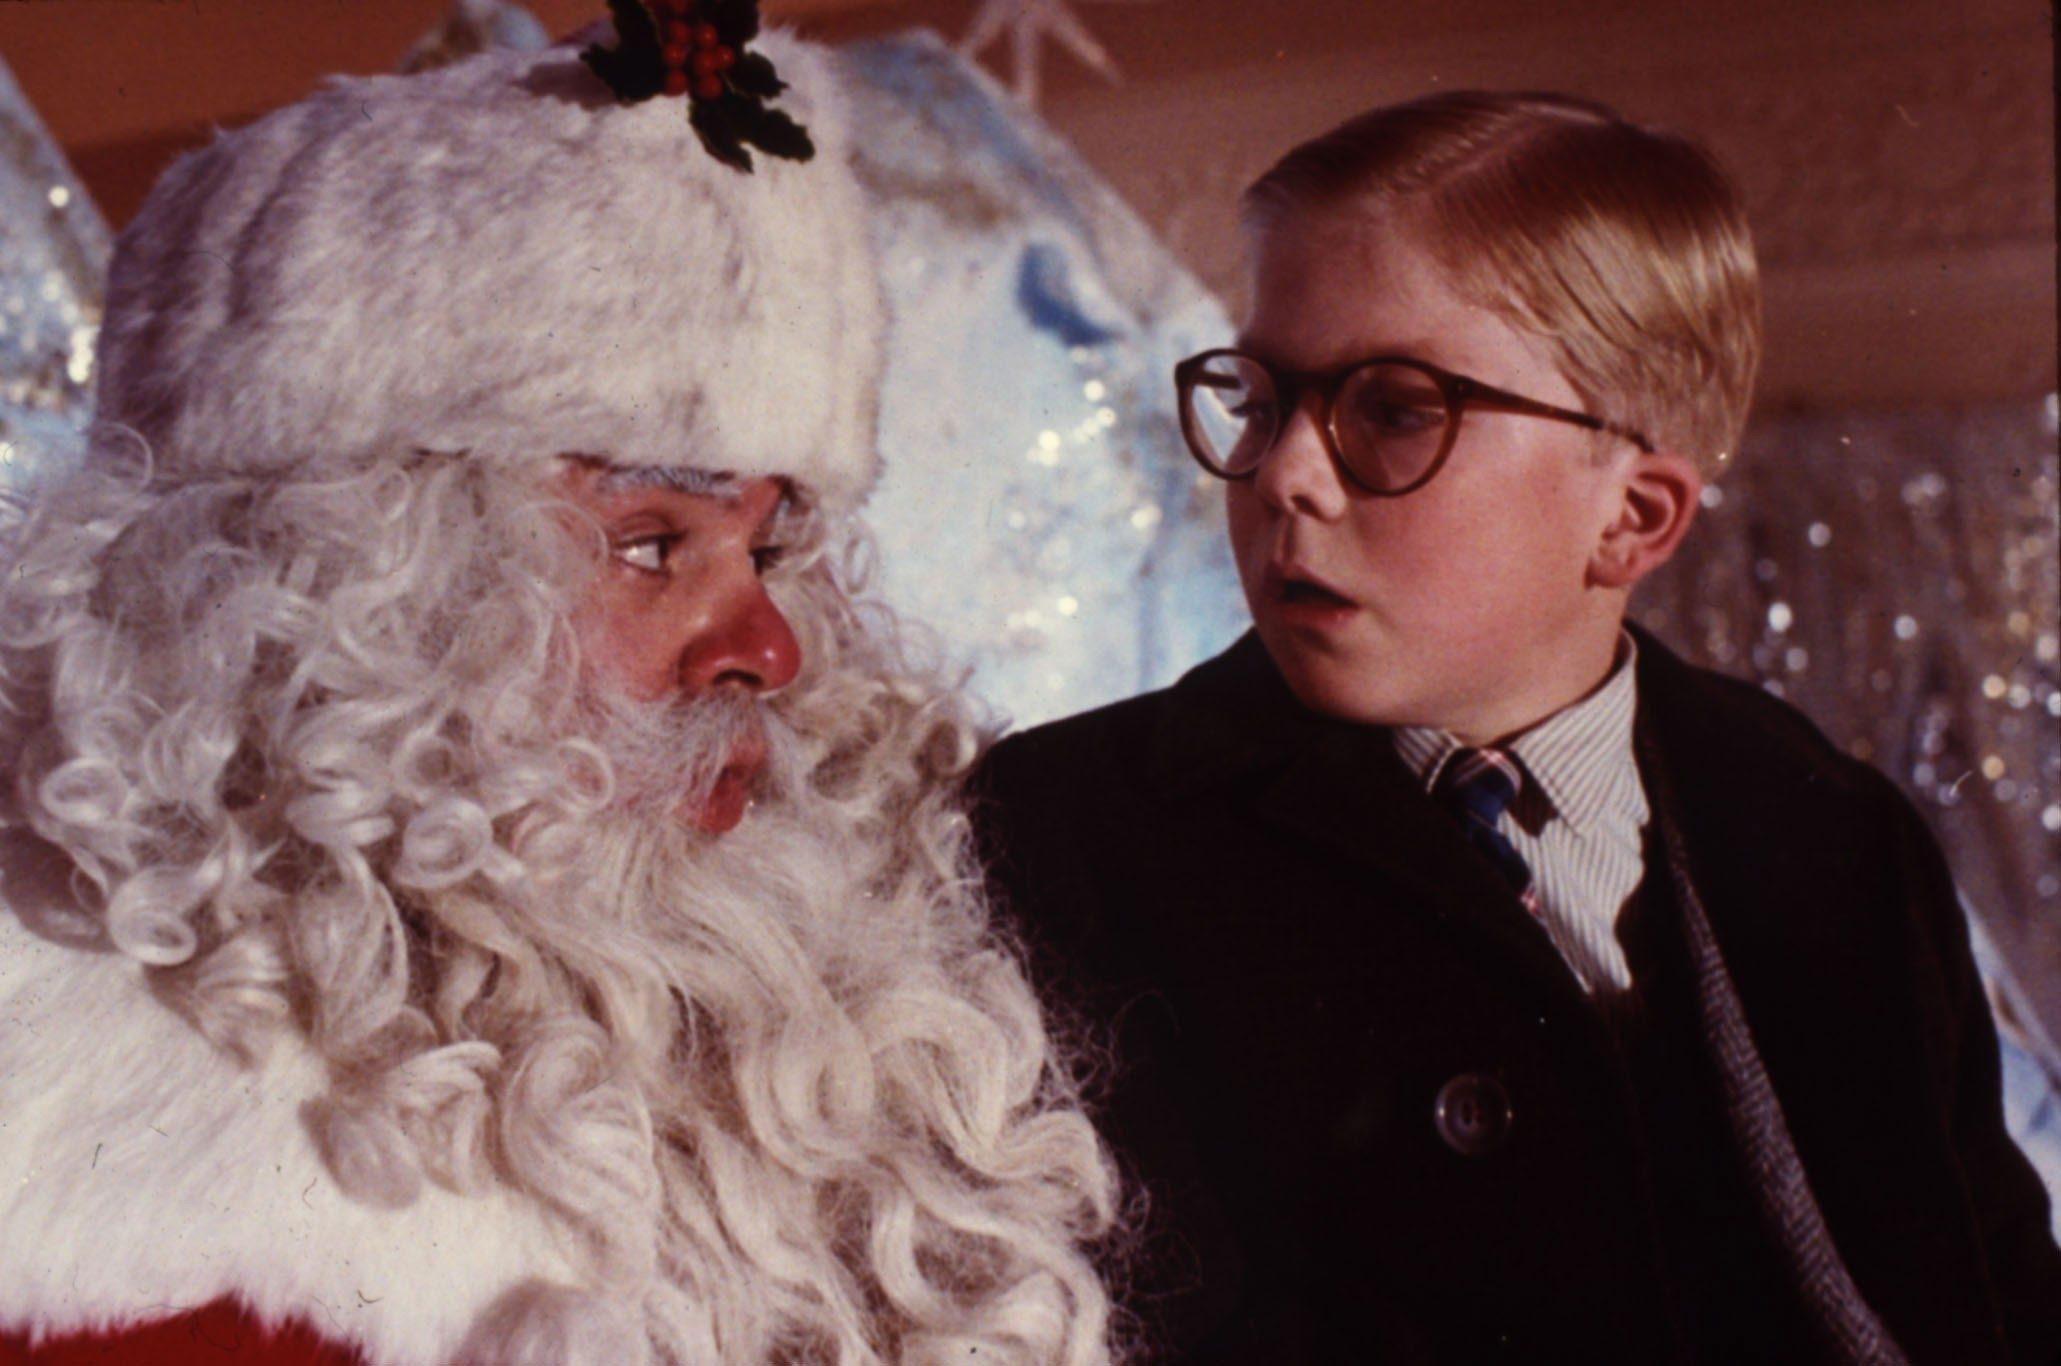 Christmas Story Cast.A Christmas Story Cast Appears At The Riviera Theatre For